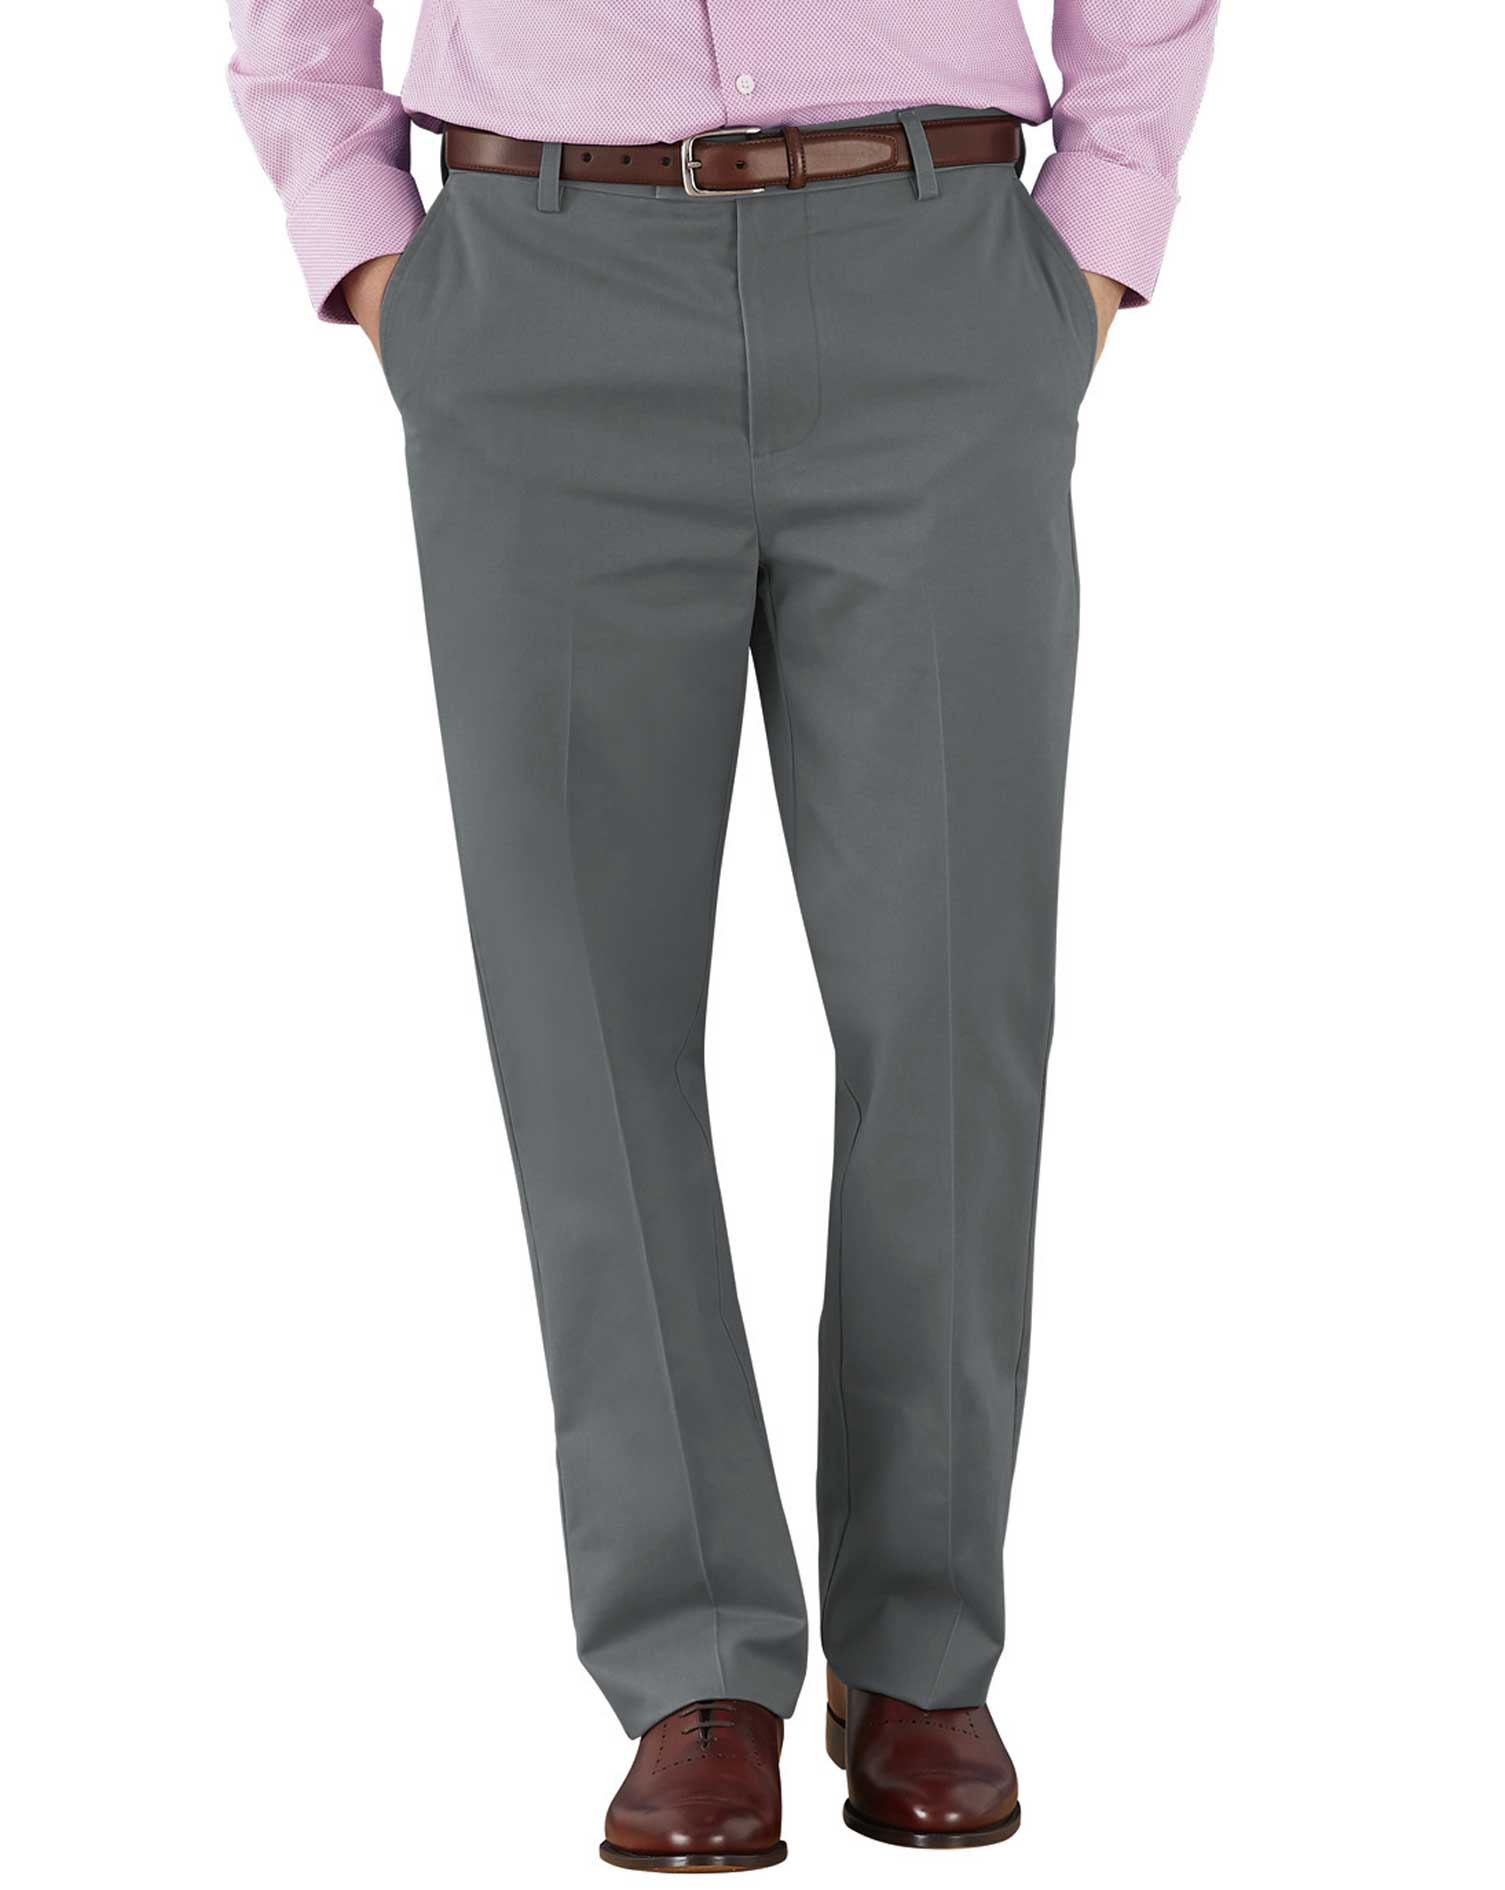 Grey Classic Fit Flat Front Non-Iron Cotton Chino Trousers Size W36 L29 by Charles Tyrwhitt